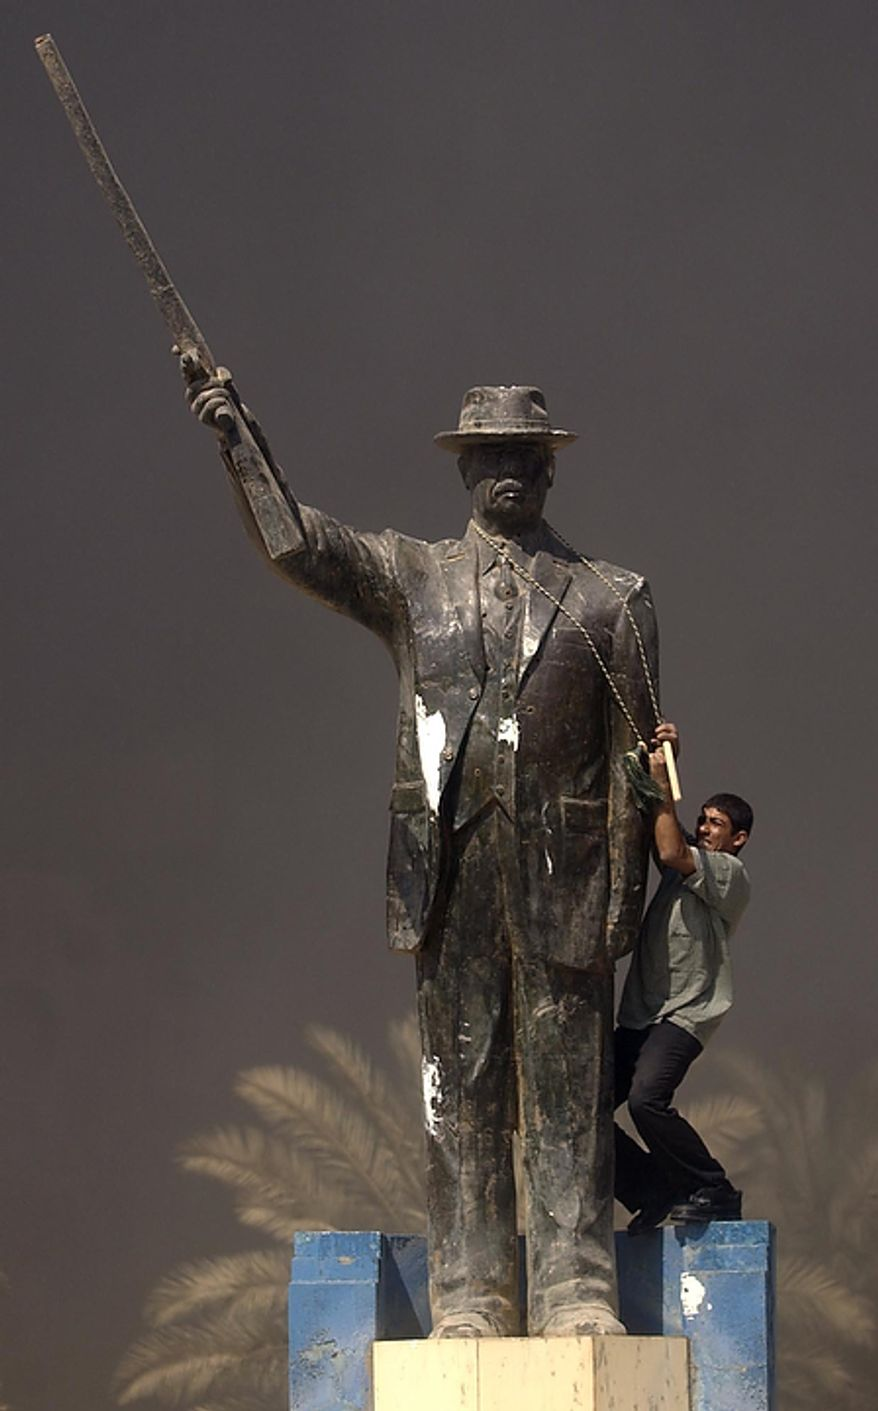 An Iraqi boy tries to pull down a statue of Saddam Hussein near burning government buildings in Baghdad, Iraq Friday, April 11, 2003. ( J.M. Eddins Jr. / The Washington Times )